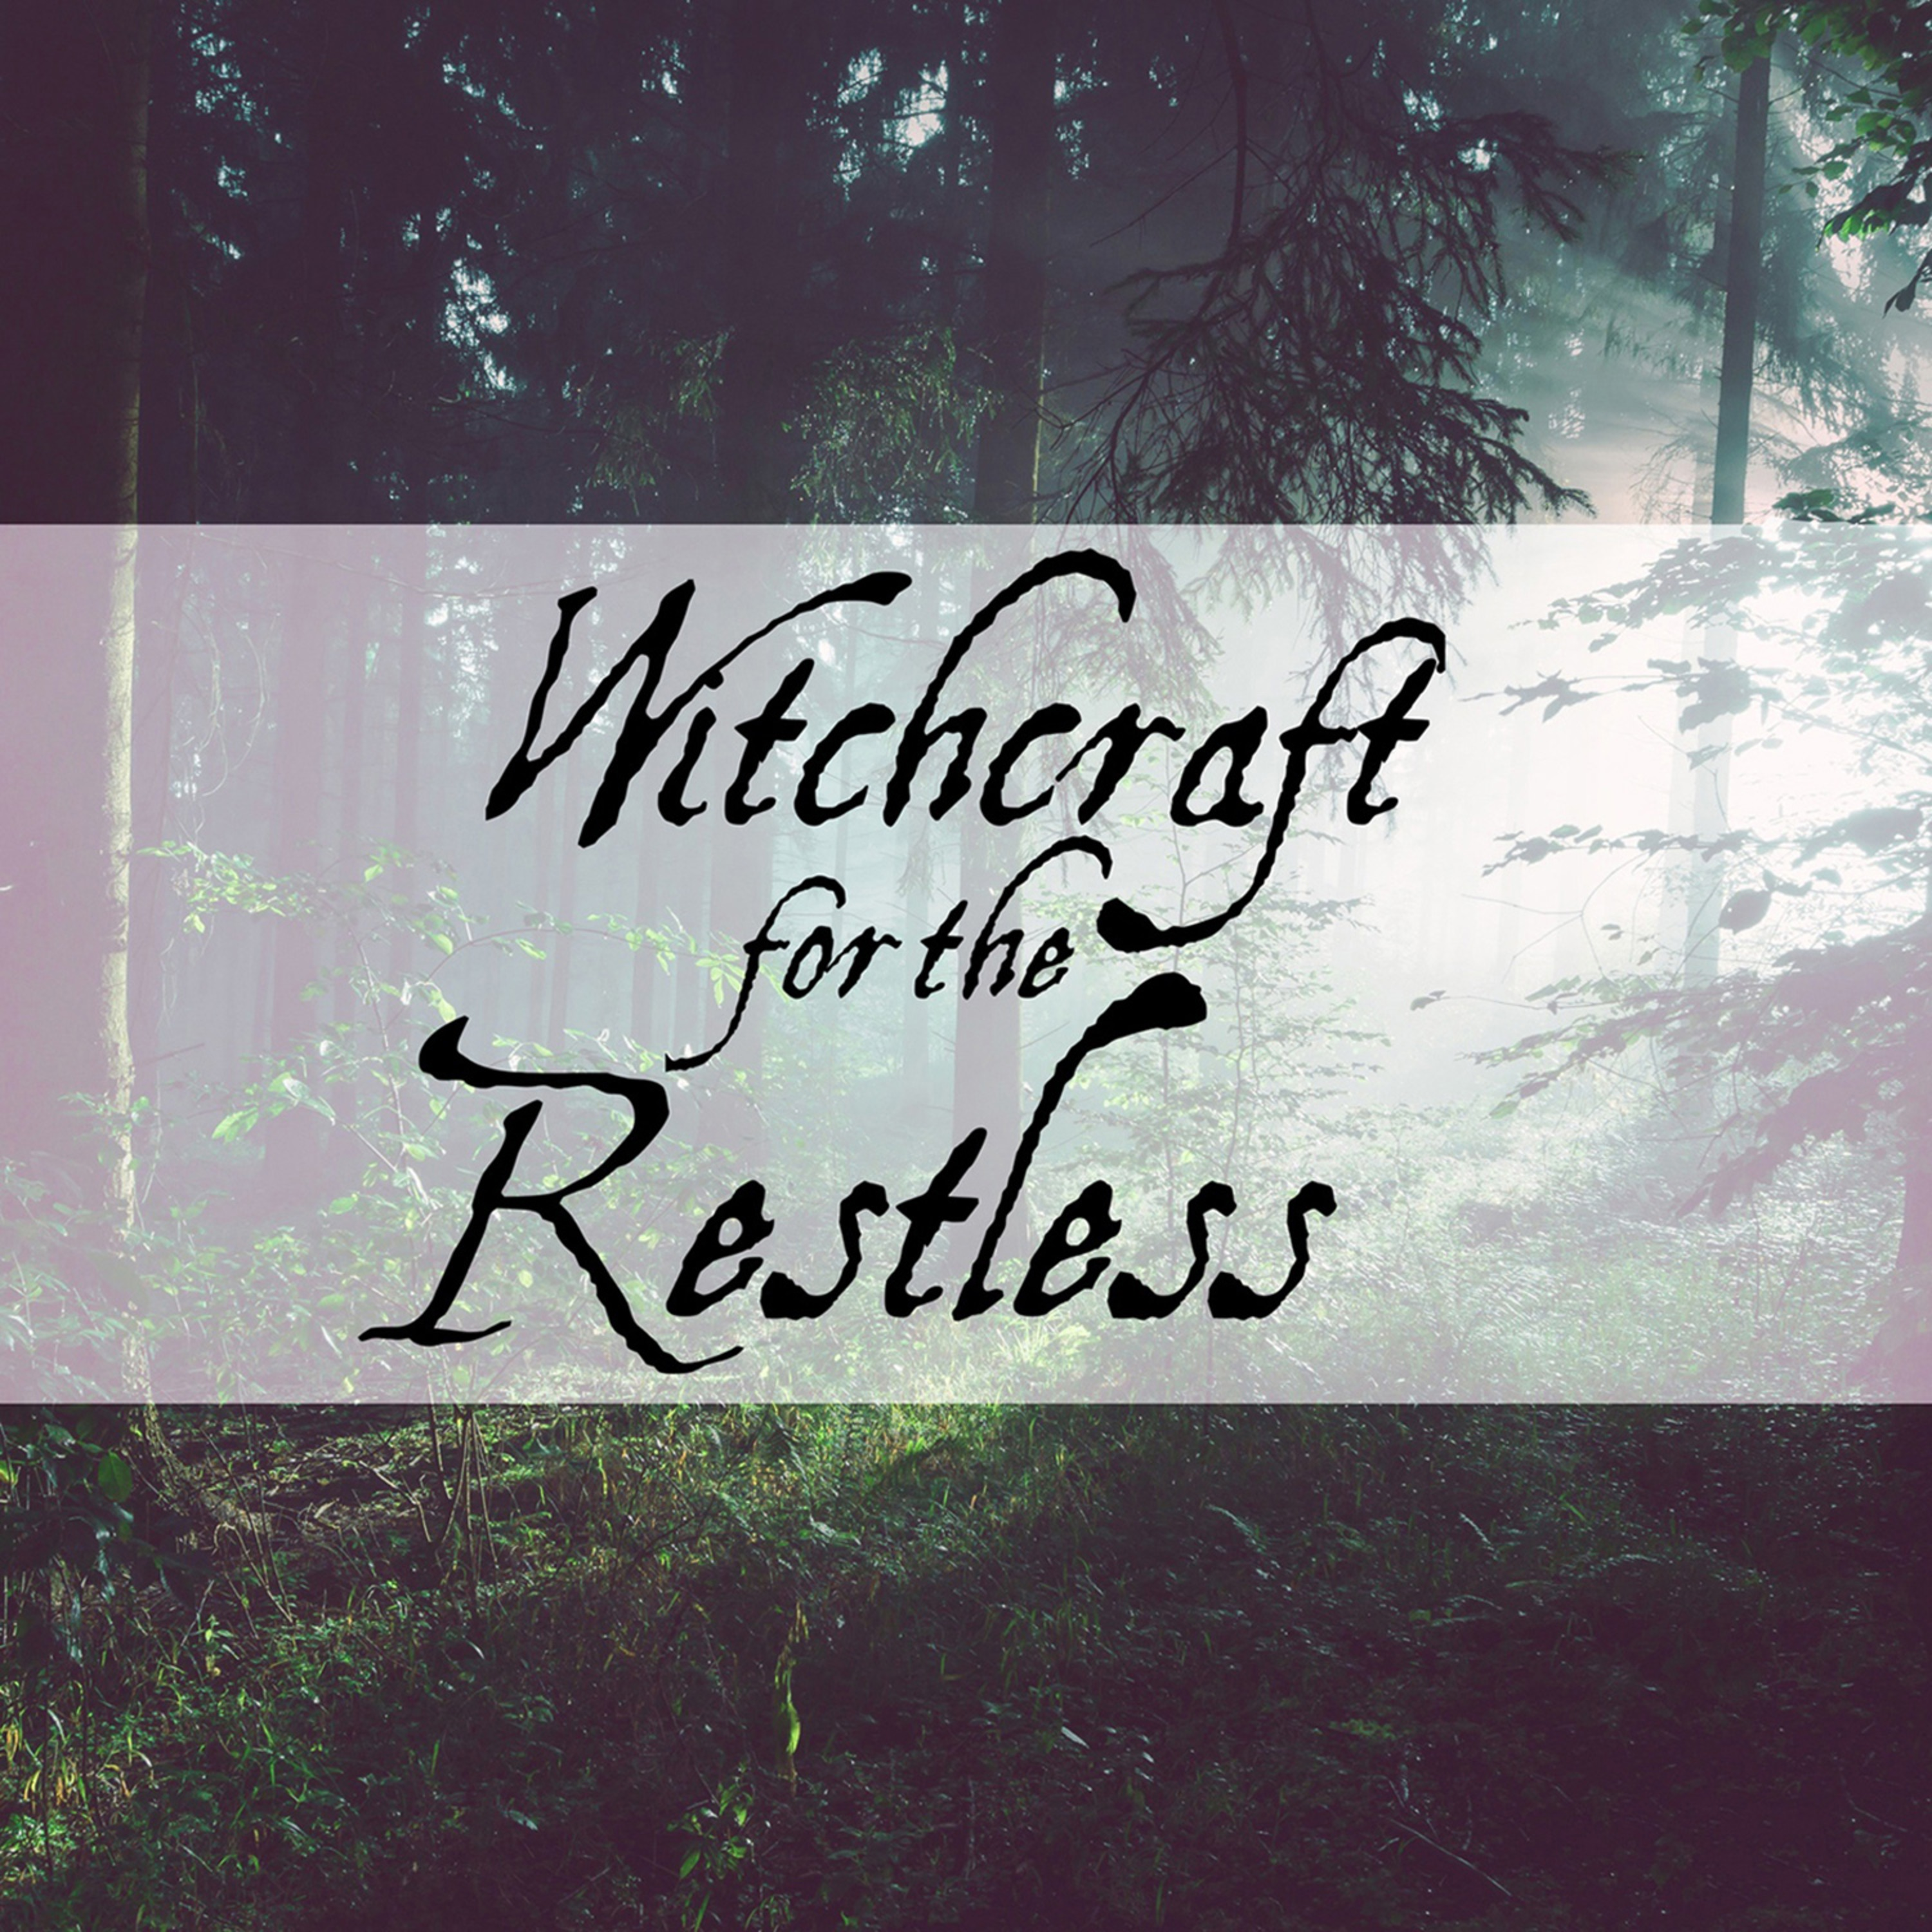 Witchcraft for the Restless